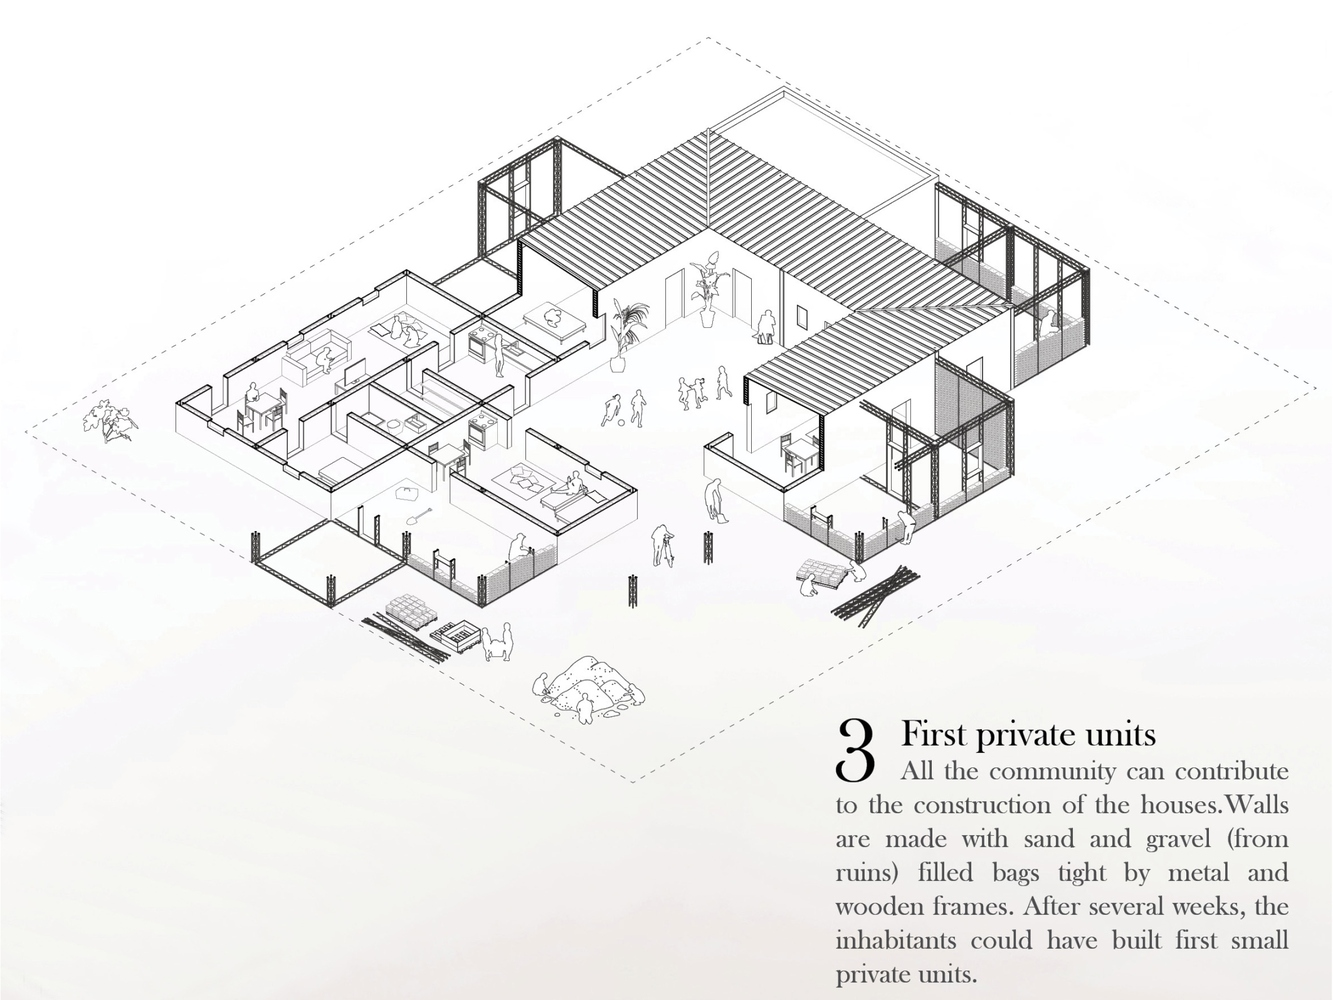 gallery of archstorming announces winners of mosul postwar c House Framing Standards archstorming announces winners of mosul postwar c petition